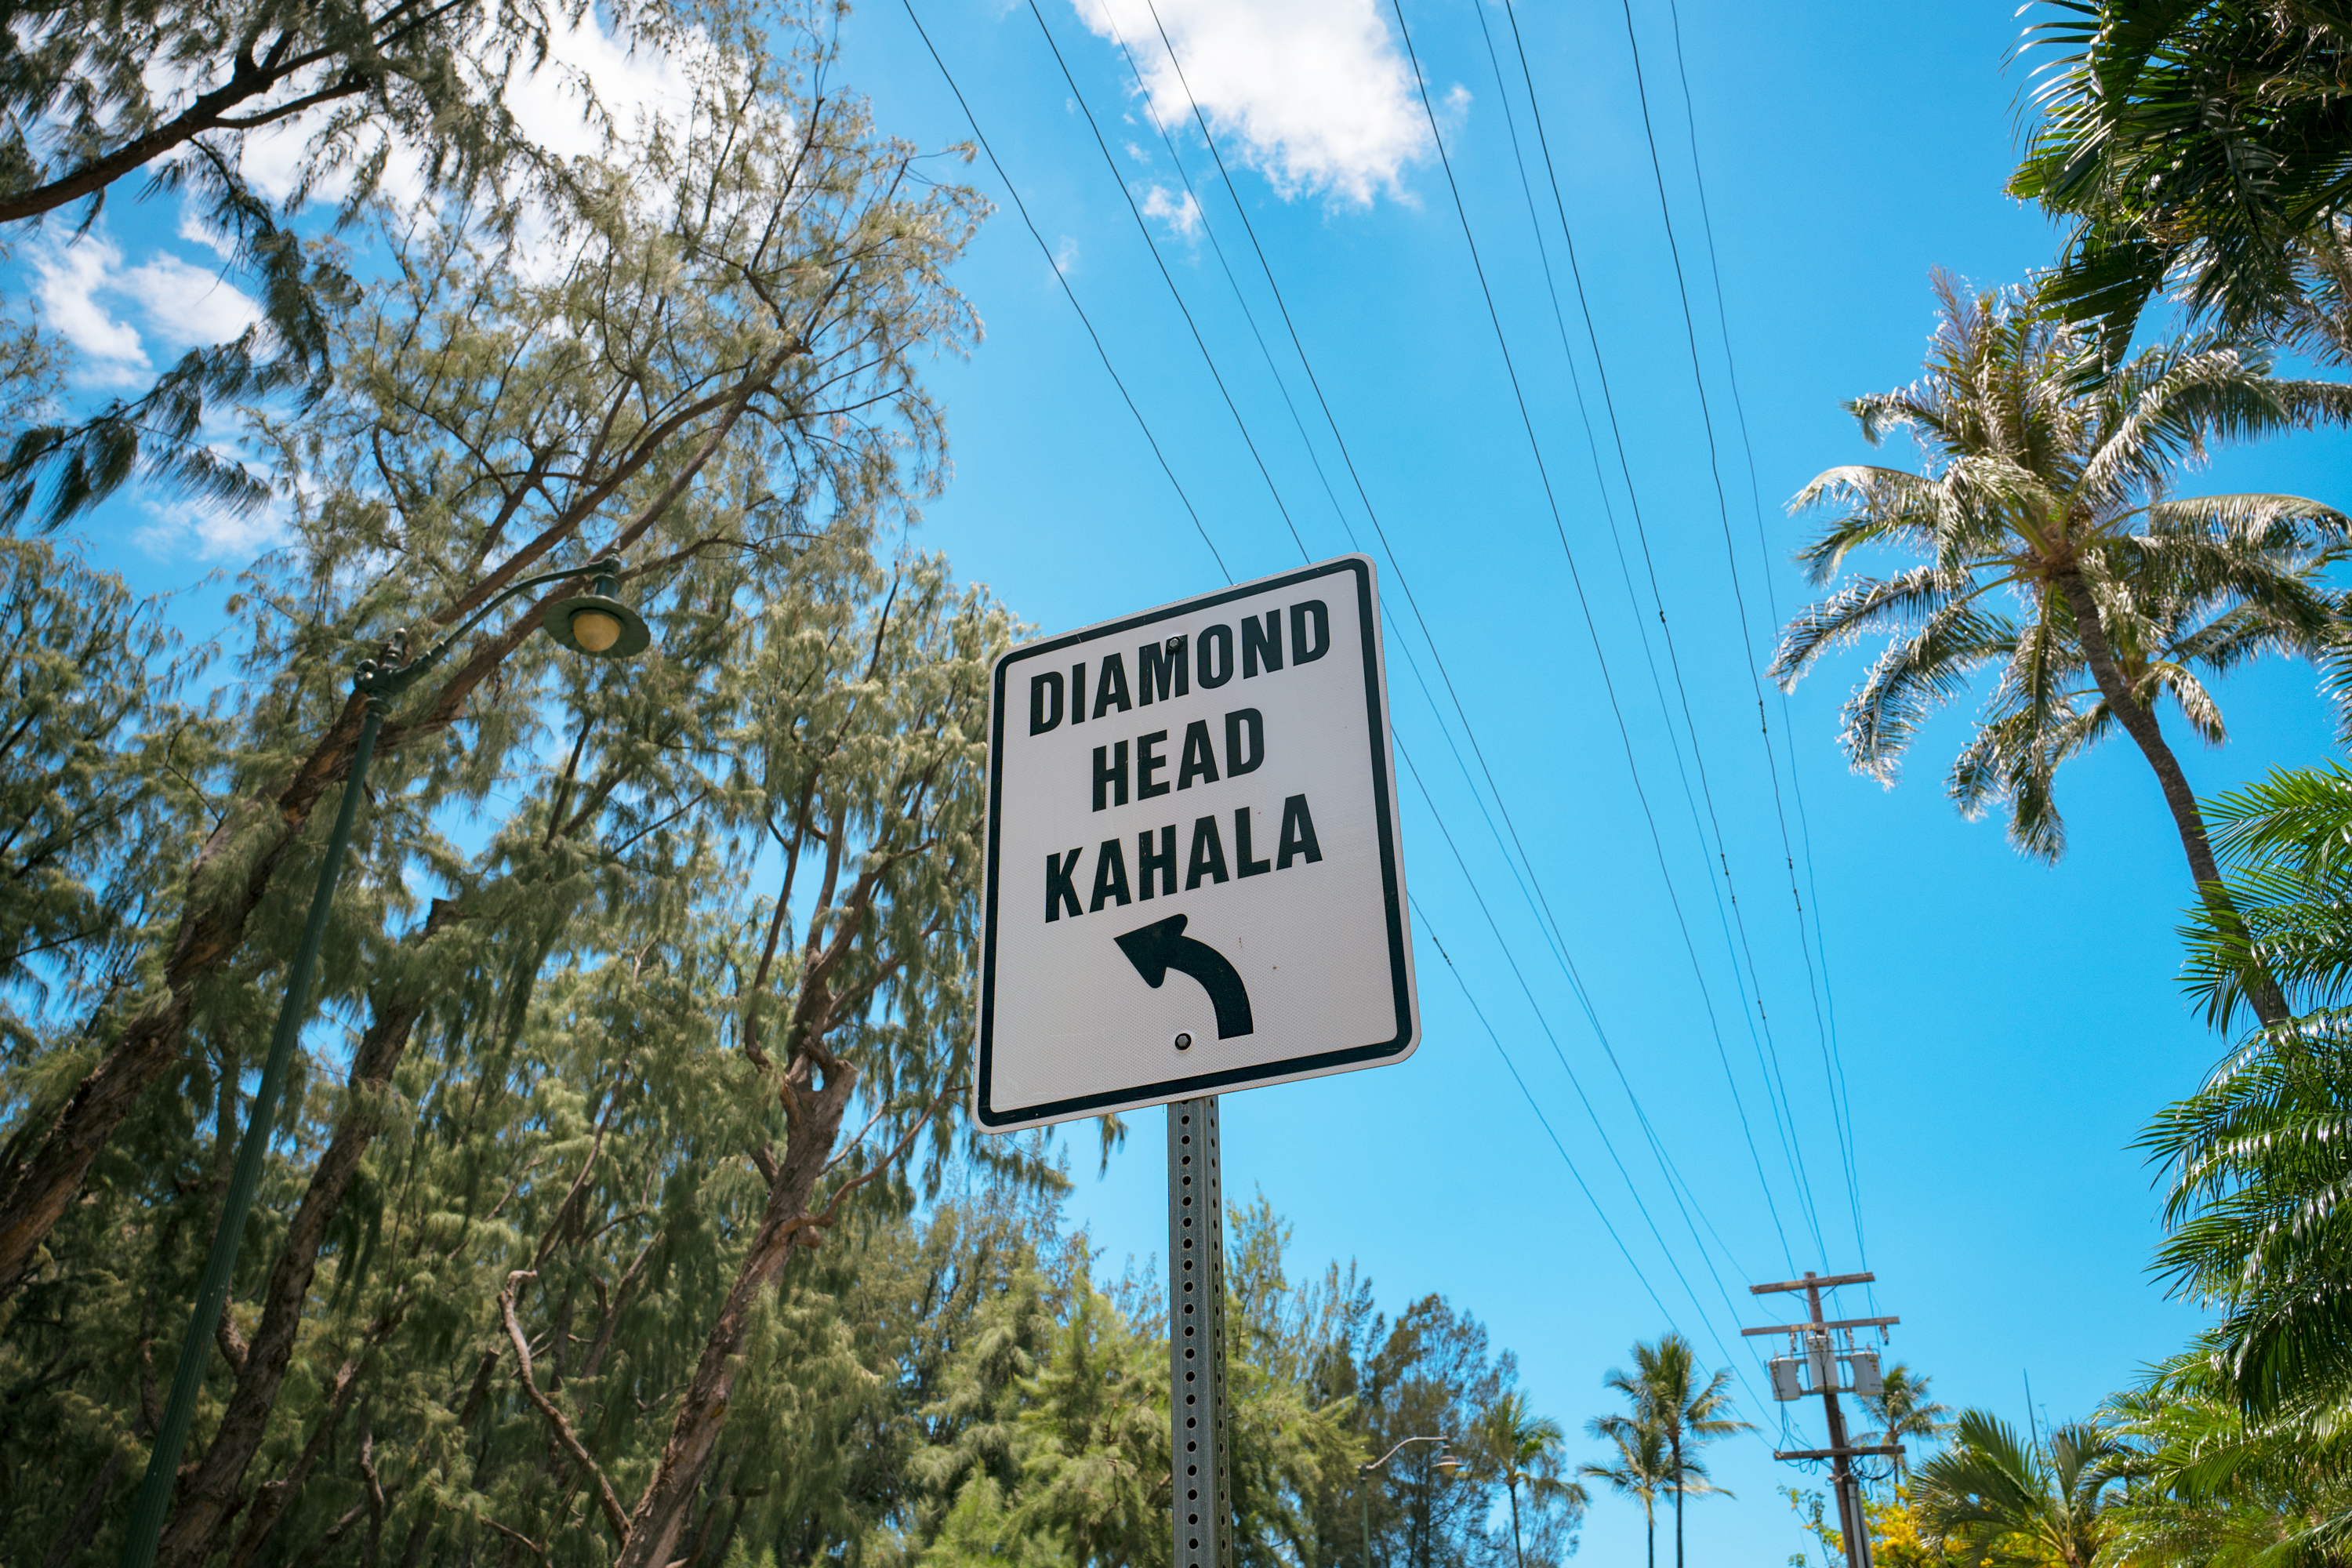 Diamond Head Road